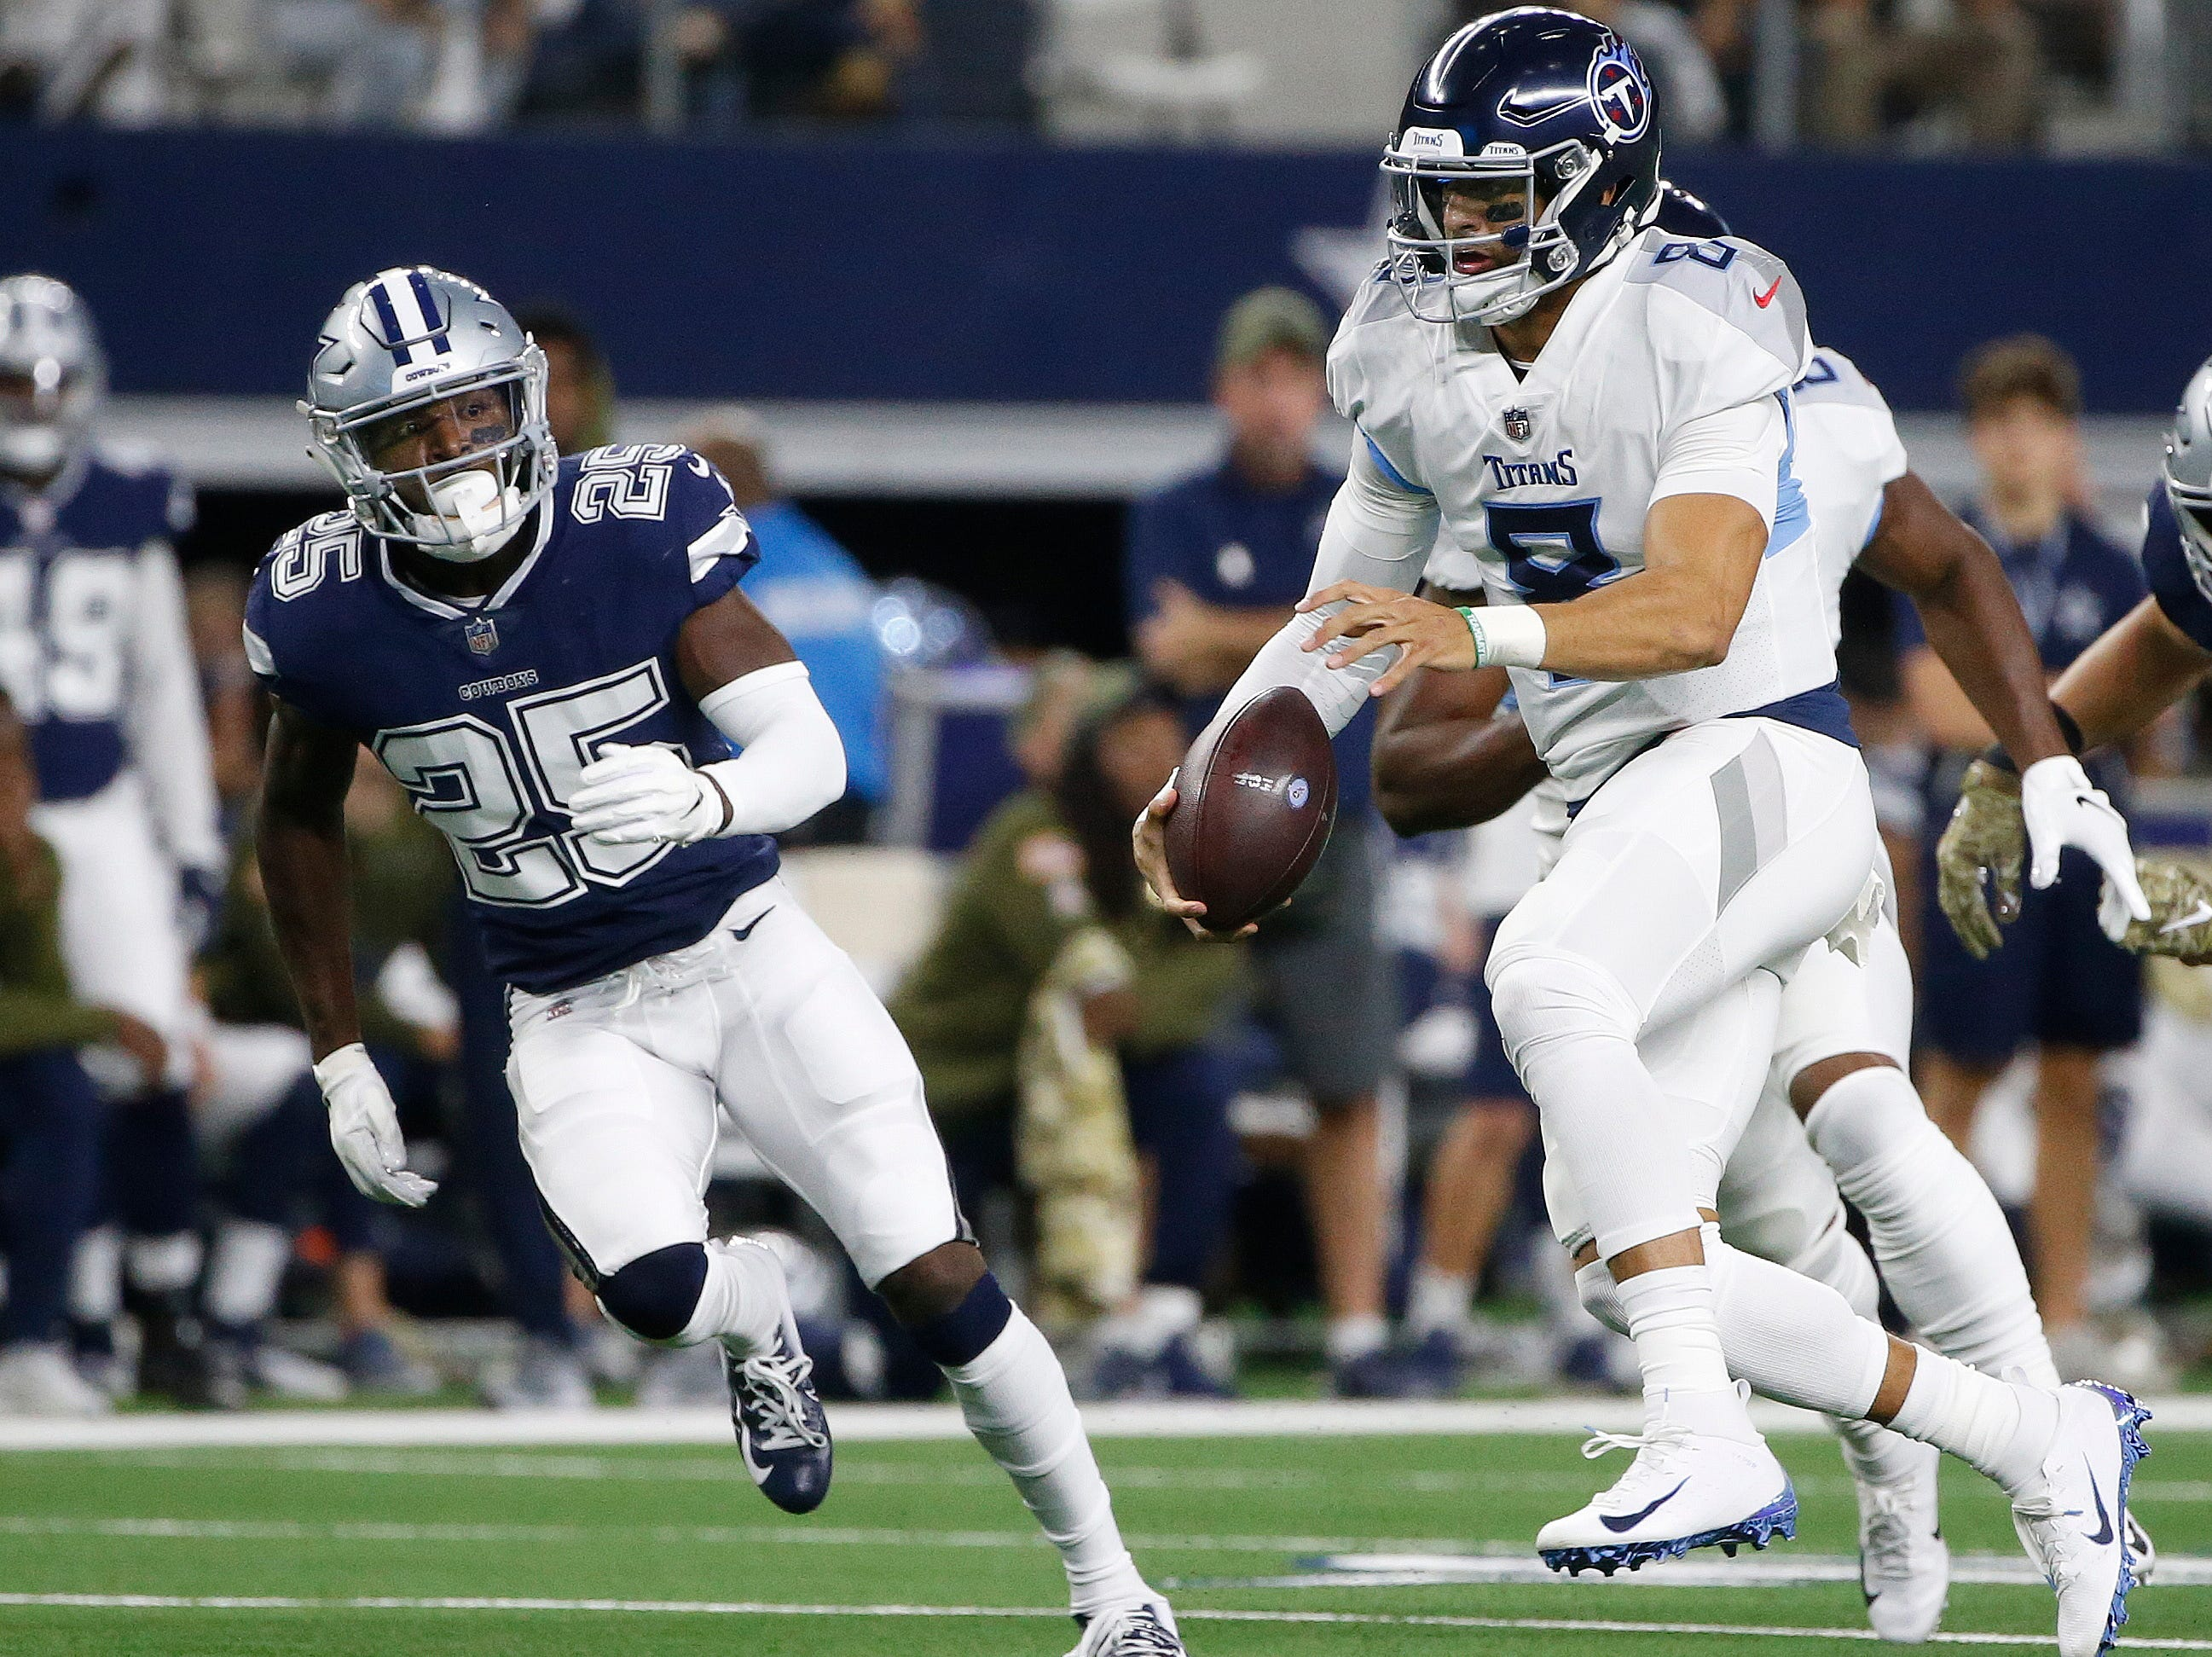 Tennessee Titans quarterback Marcus Mariota (8) runs out of the pocket against the Dallas Cowboys during the first half of an NFL football game, Monday, Nov. 5, 2018, in Arlington, Texas.